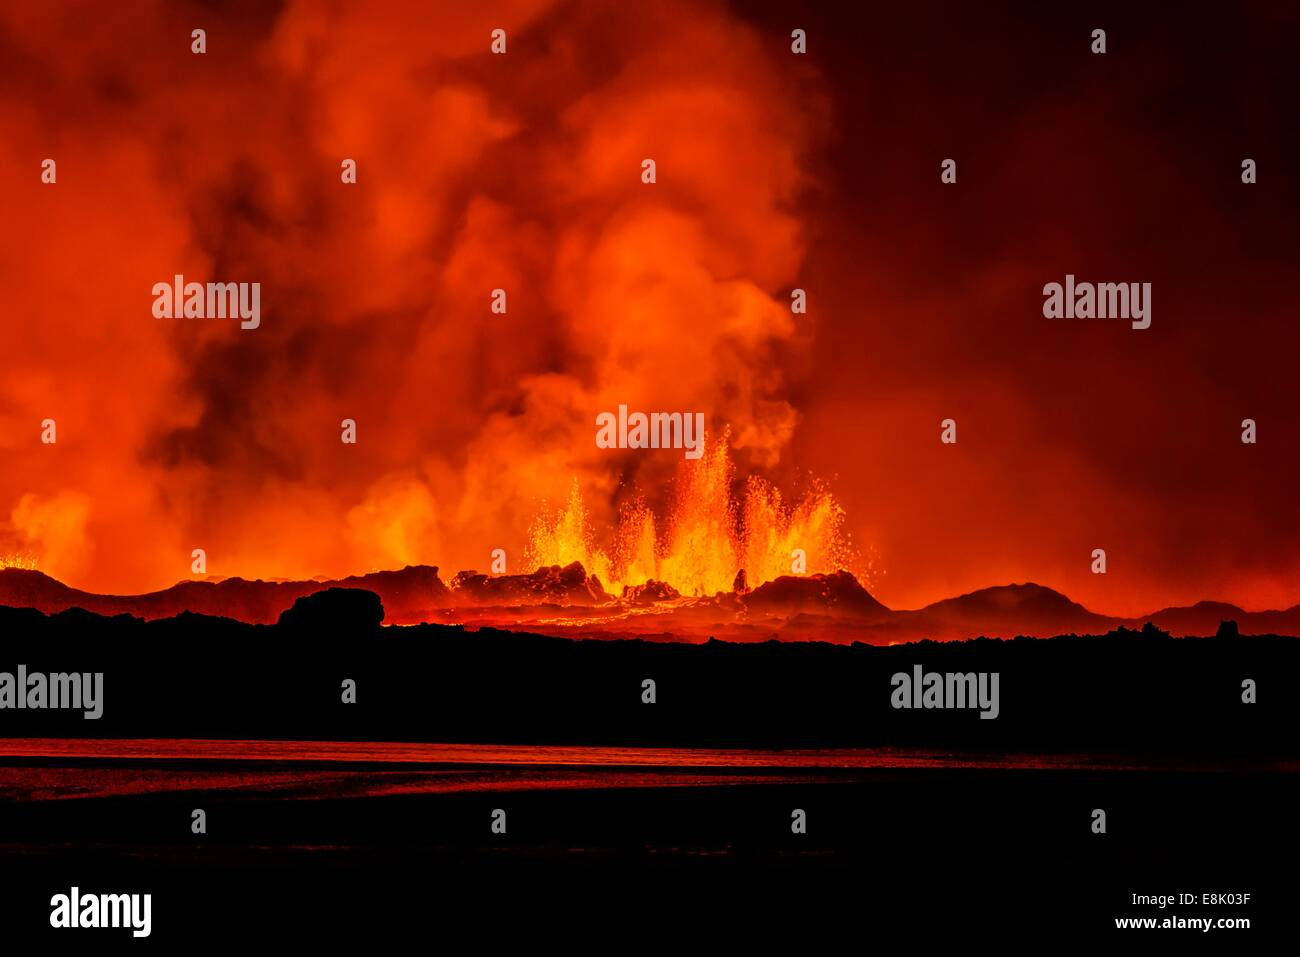 Lava fountains at night, eruption at the Holuhraun Fissure, near the Bardarbunga Volcano, Iceland - Stock Image